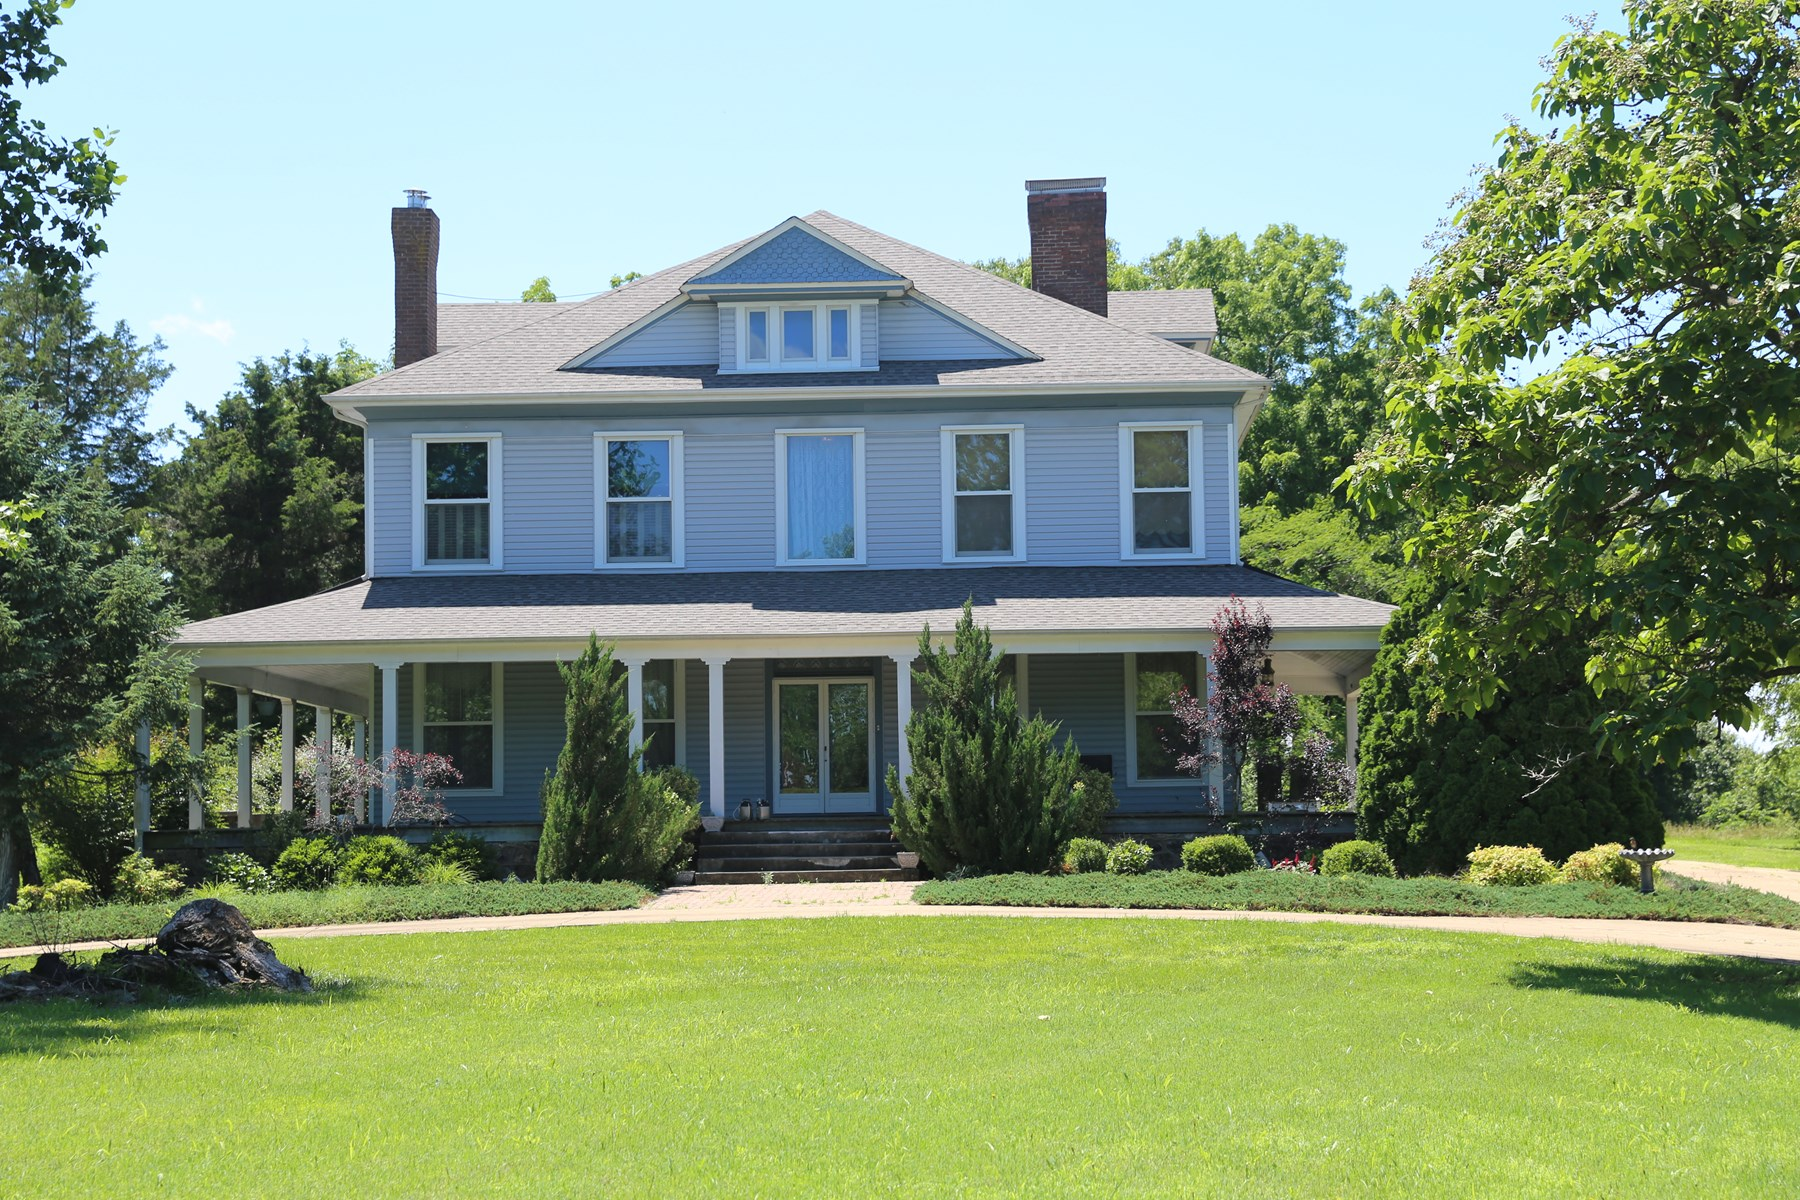 FOR SALE IN WEST PLAINS, MISSOURI-26 acres & Victorian home